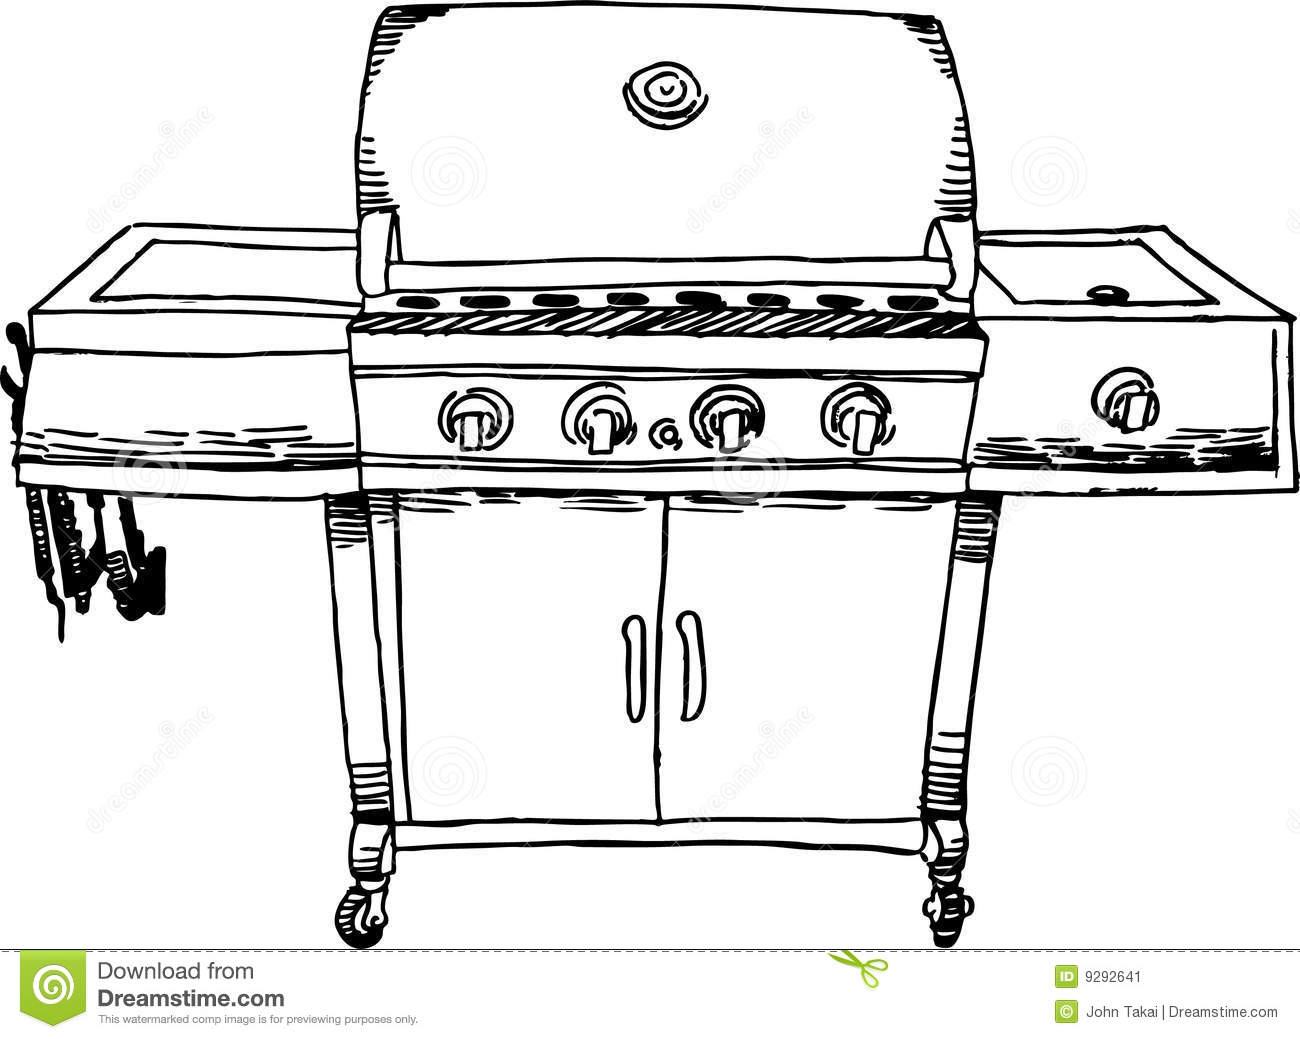 Stainless steel barbeque bbq grill b amp w stock image image